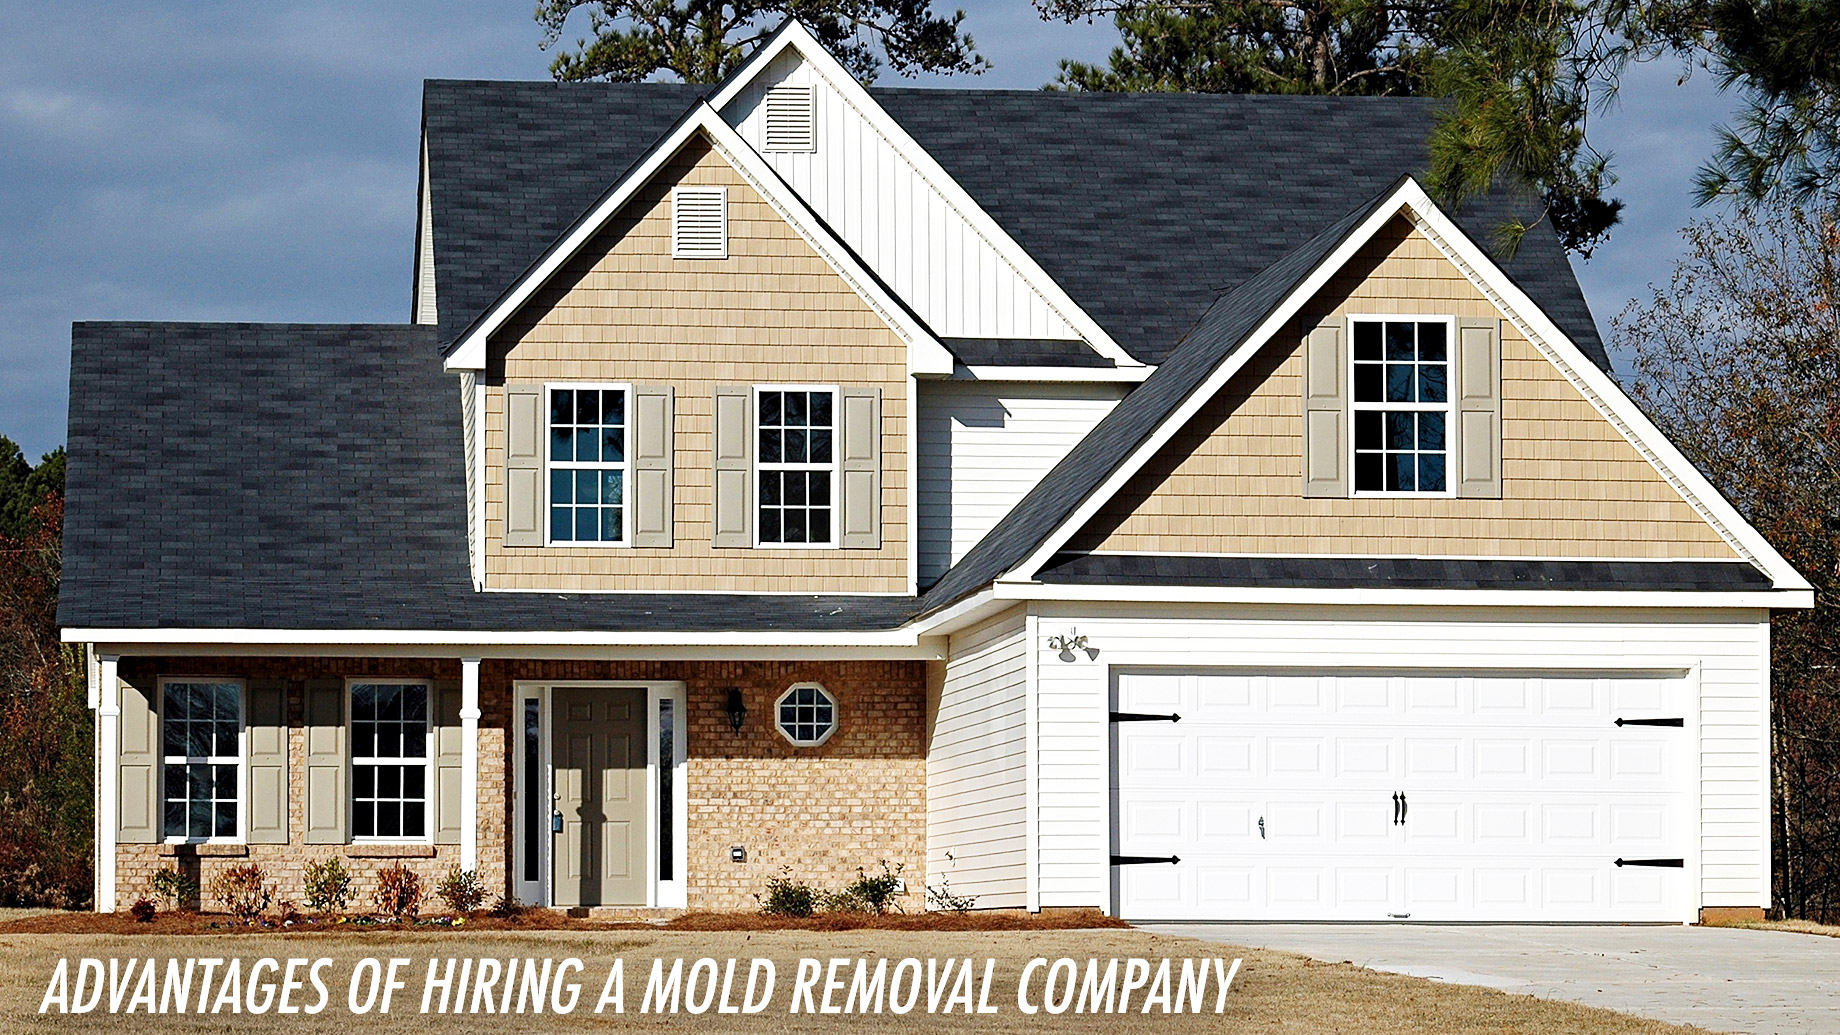 Home Maintenance - Advantages Of Hiring A Mold Removal Company